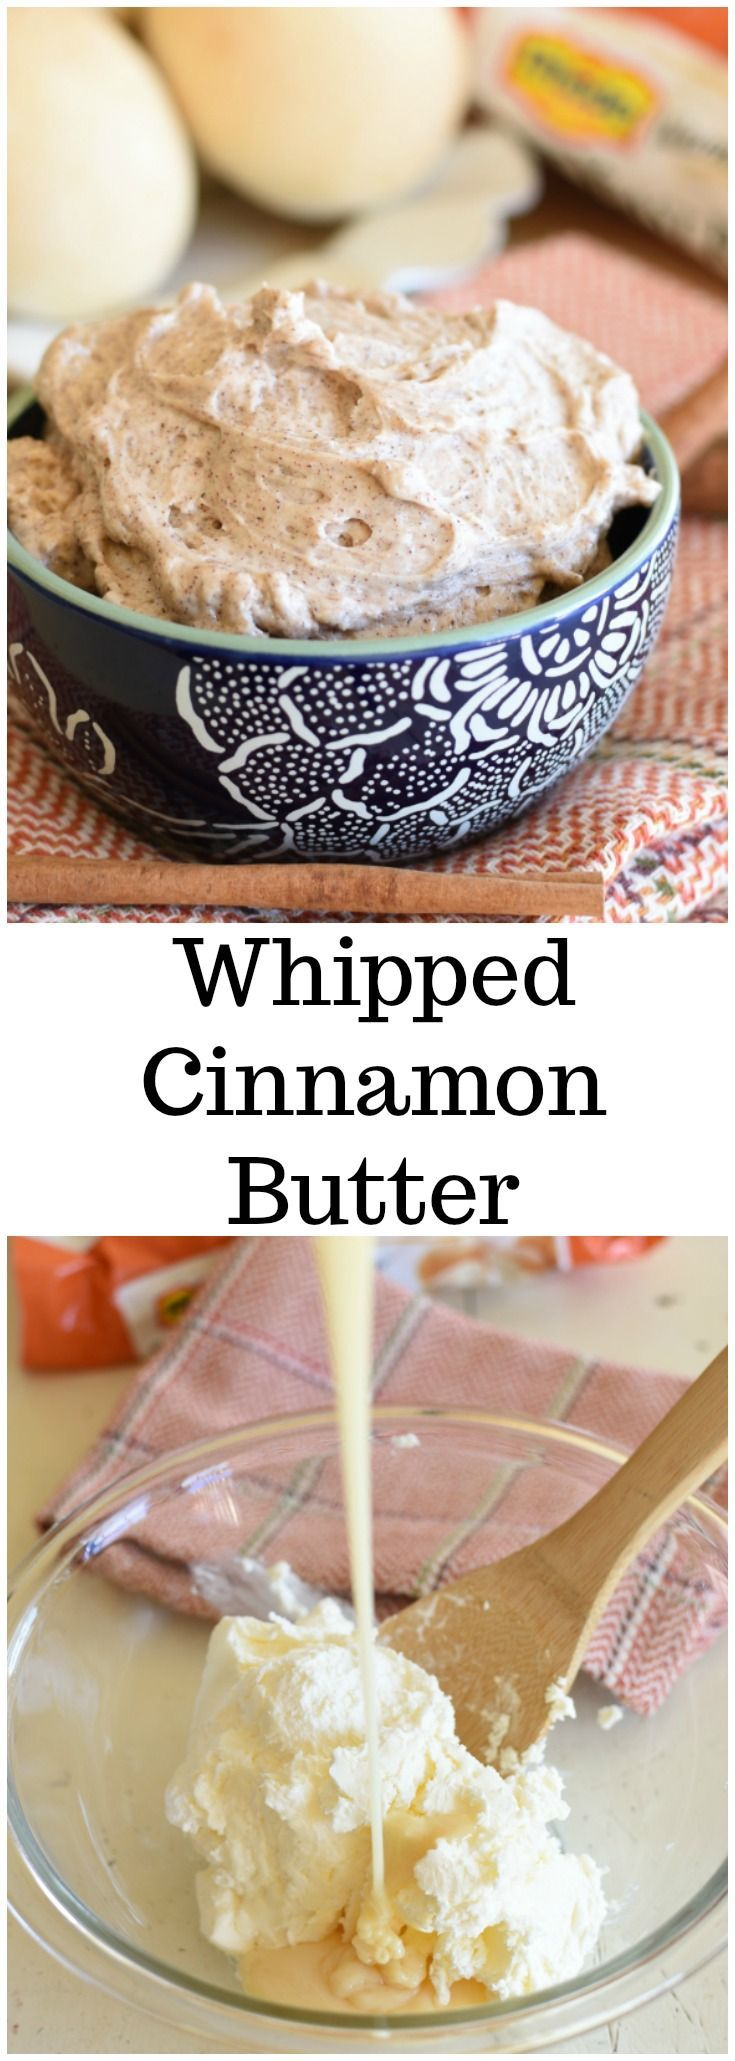 Whipped Cinnamon Butter! This is a copy cat Texas Roadhouse Butter recipe! 4 ingredients! Serve it with Rhodes Rolls! #ad #Rhodes #FrozenDough